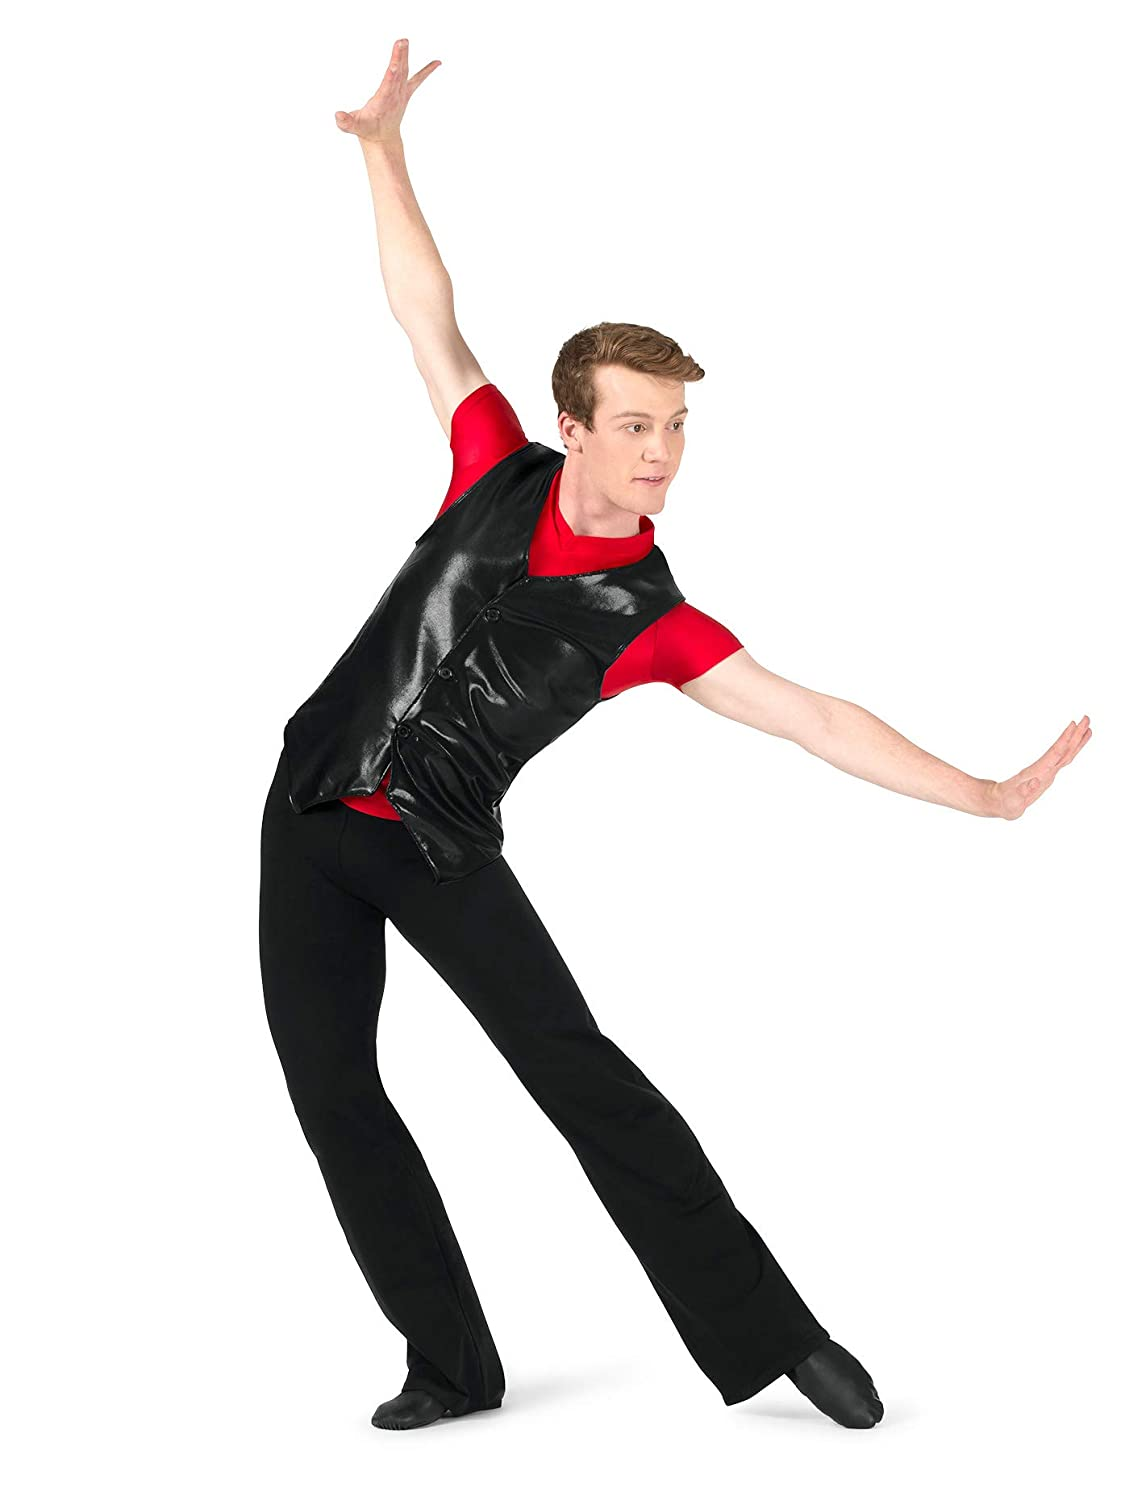 bef75d959090 Body Wrappers Mens Dancewear Jazz Pant - M191 at Amazon Men's Clothing  store: